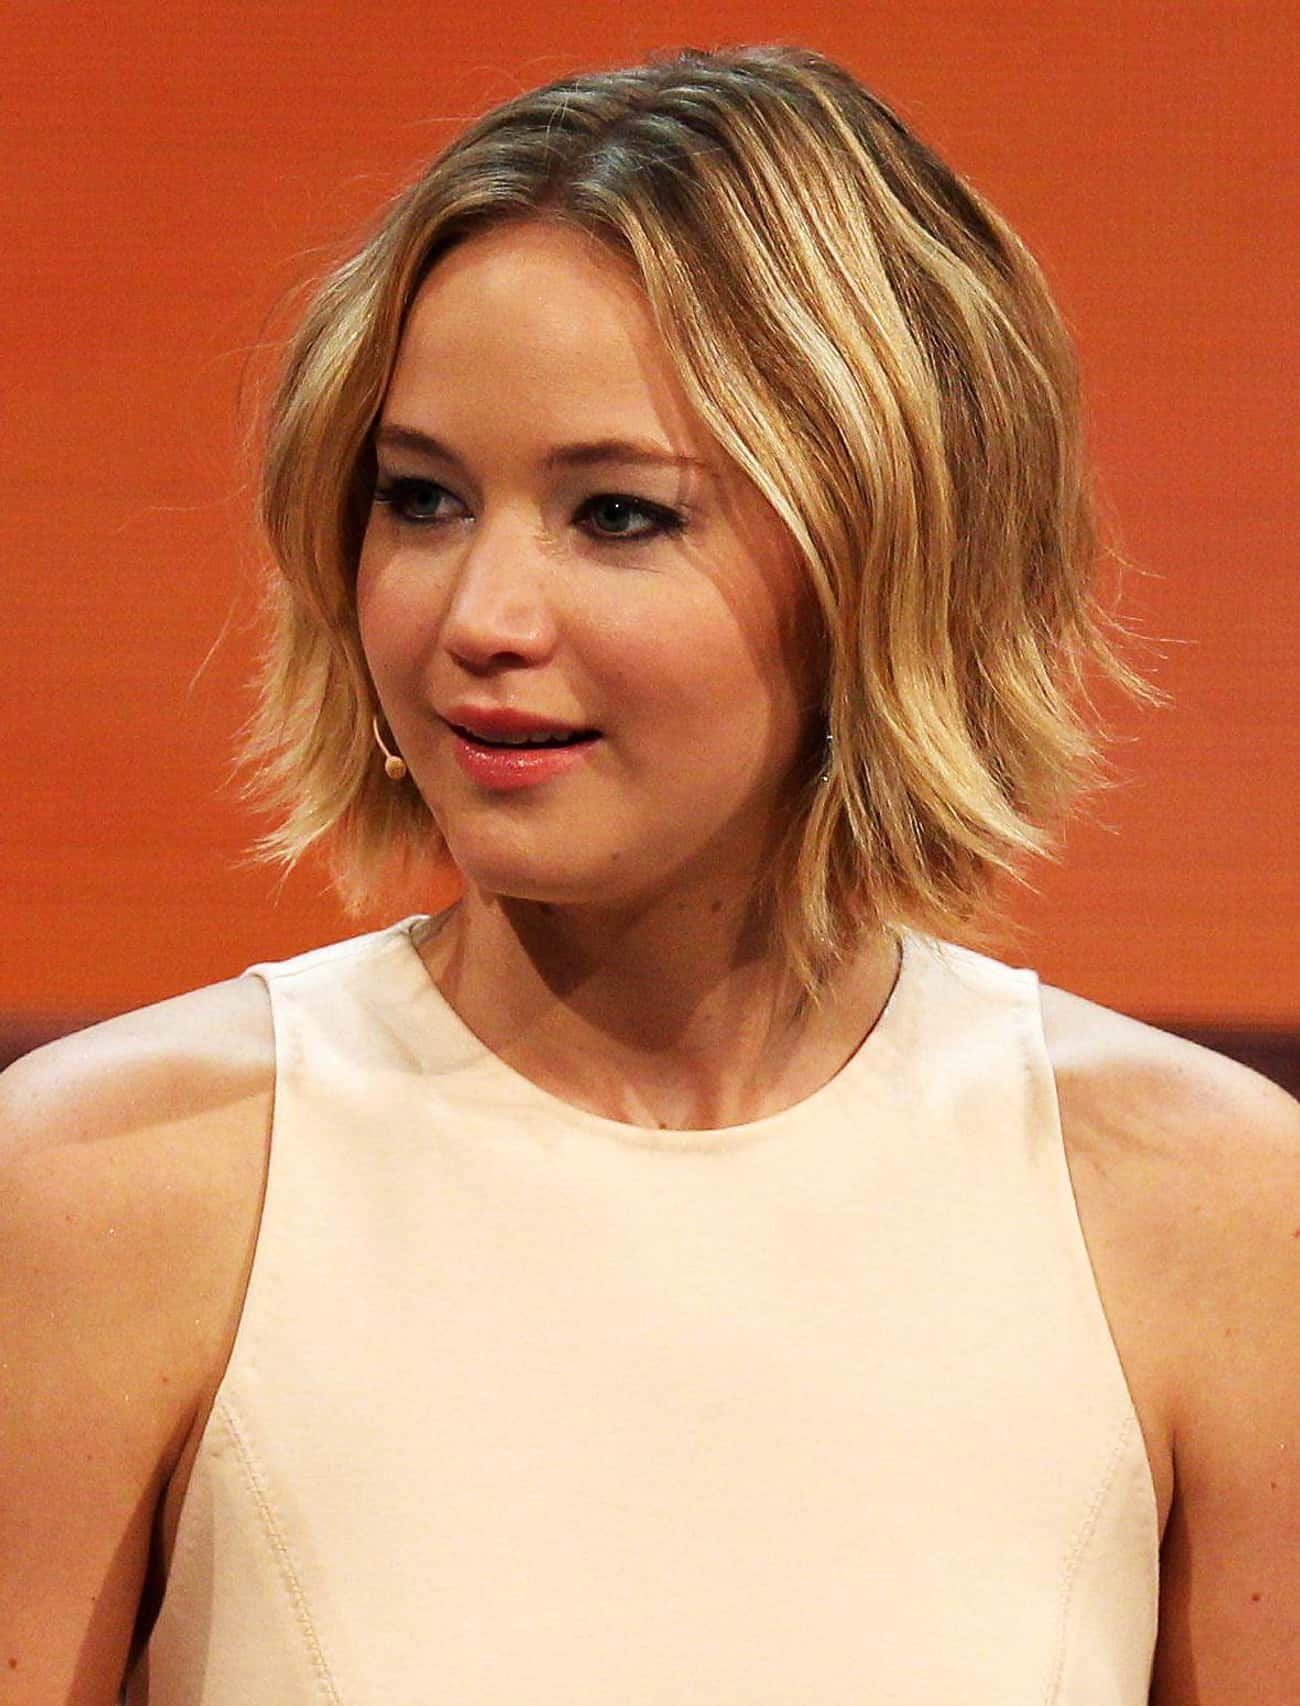 Jennifer Lawrence Hugged Sophi is listed (or ranked) 4 on the list 24 Celebs Who Love 'Game of Thrones' As Much As You Do